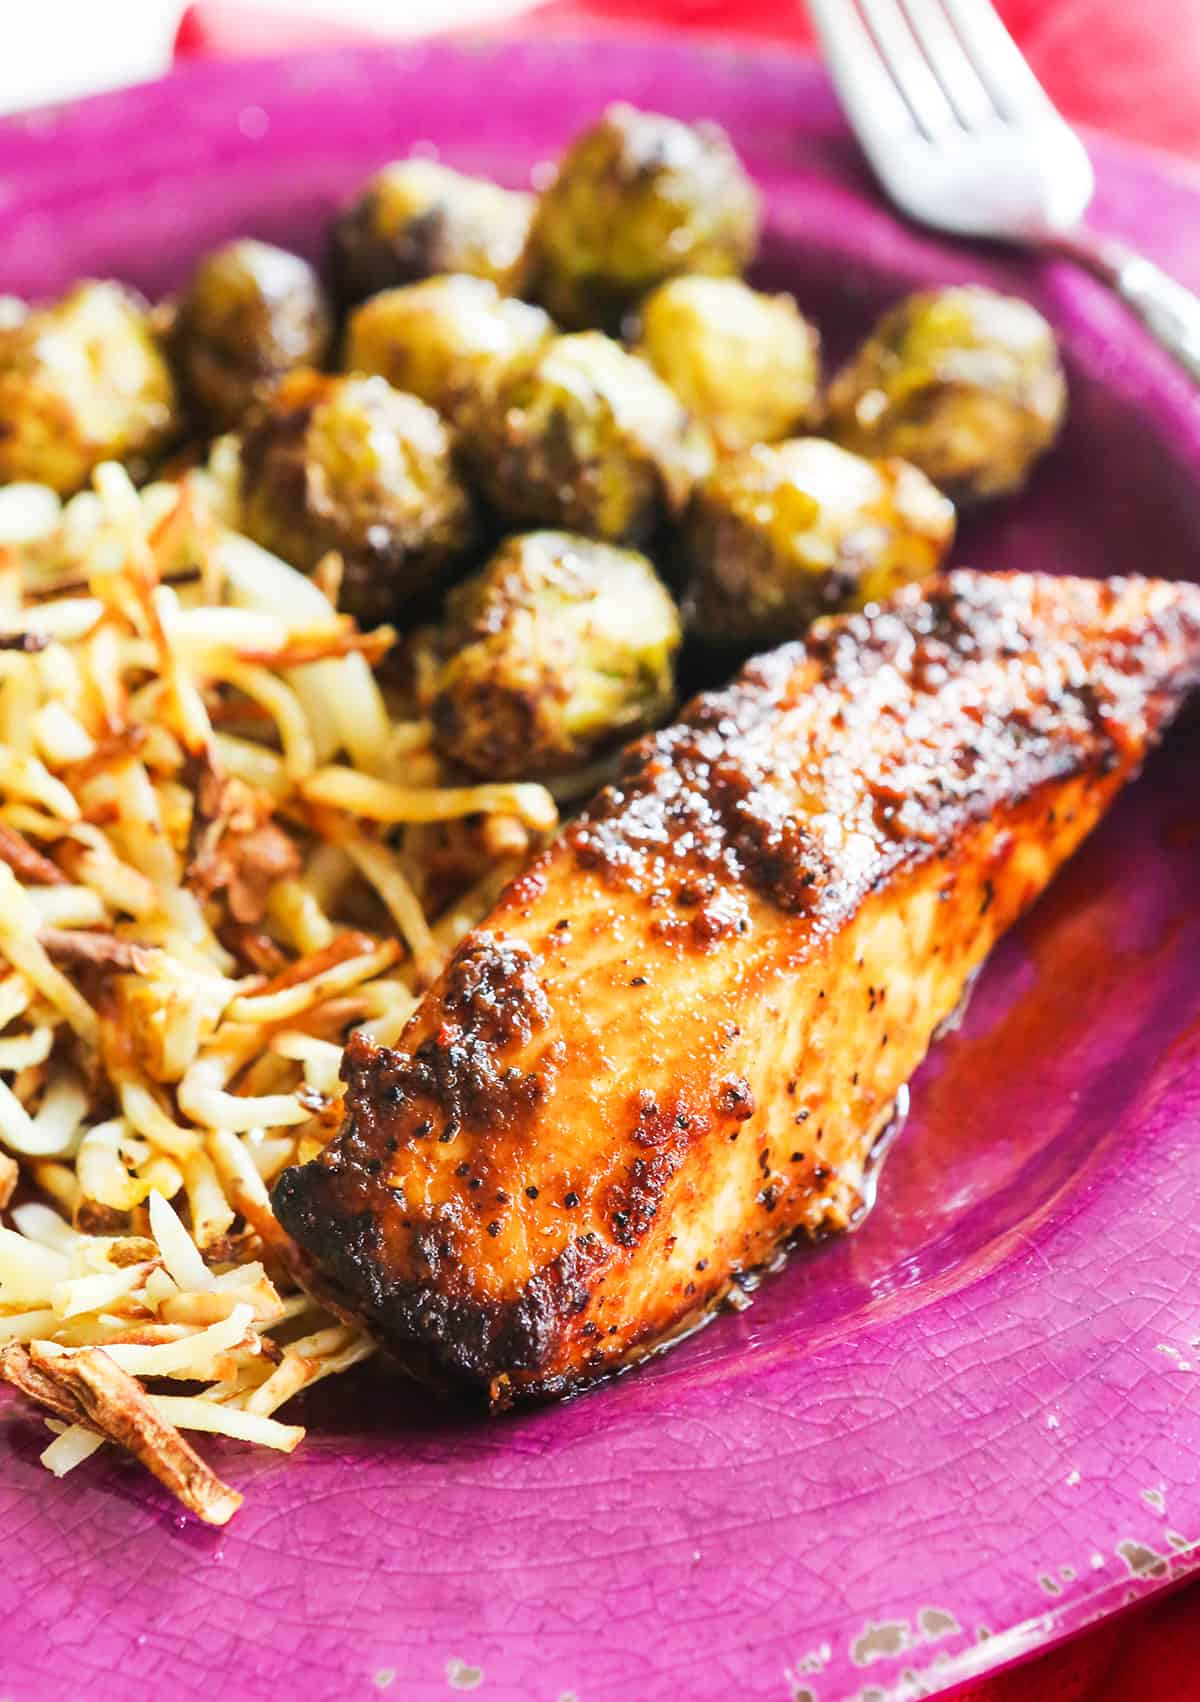 Salmon, hash browns and Brussels sprouts on a pink plate ready to eat.